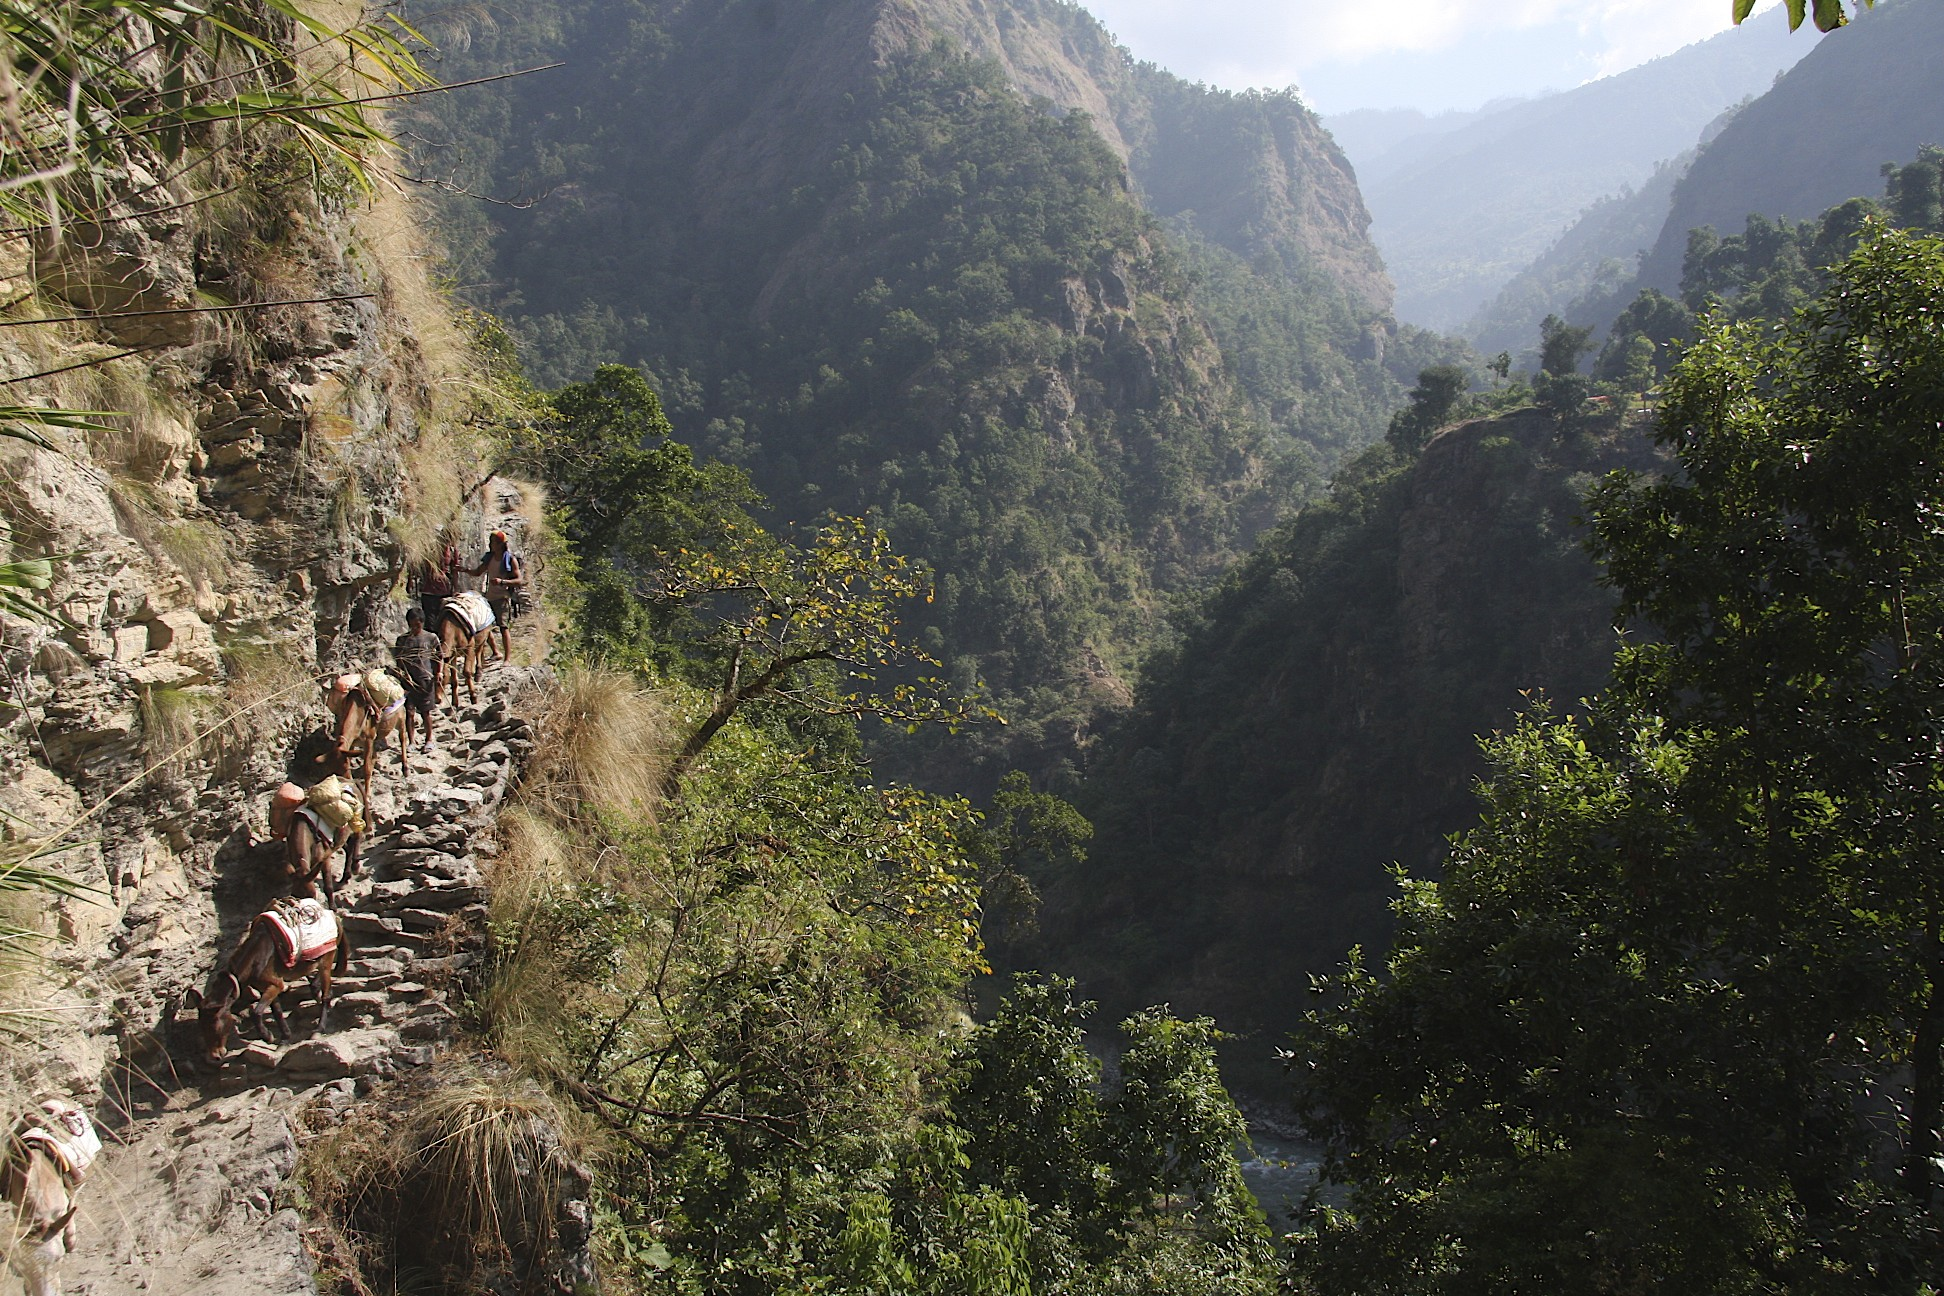 Walking up the steep trail in the Bhudi Gahandaki Valley.